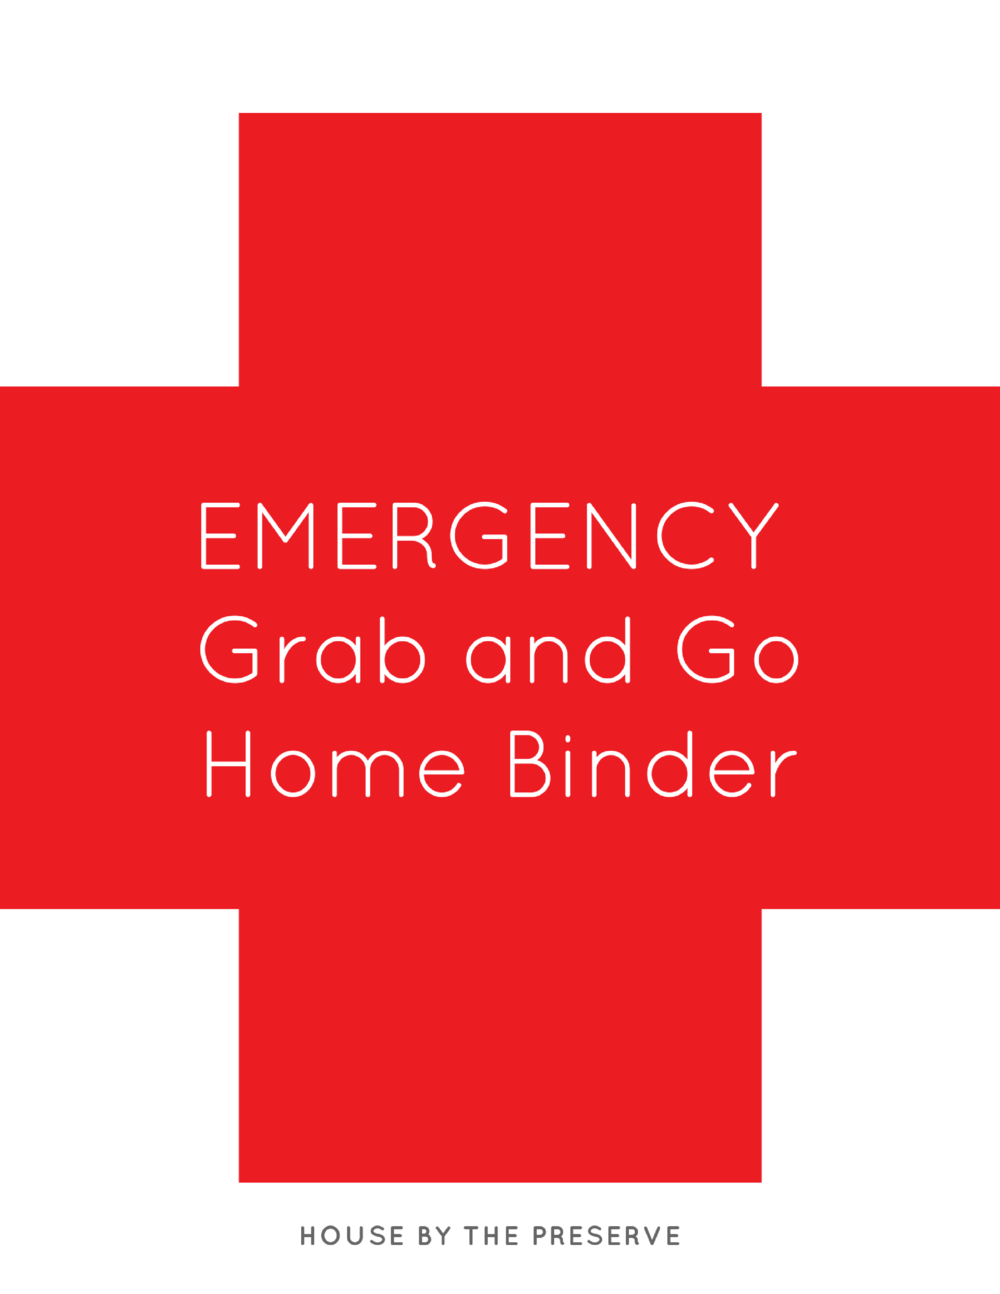 Don't get caught off guard! - Gain instant access to my FREE Emergency Grab & Go Binder Printable and create your own binder today!